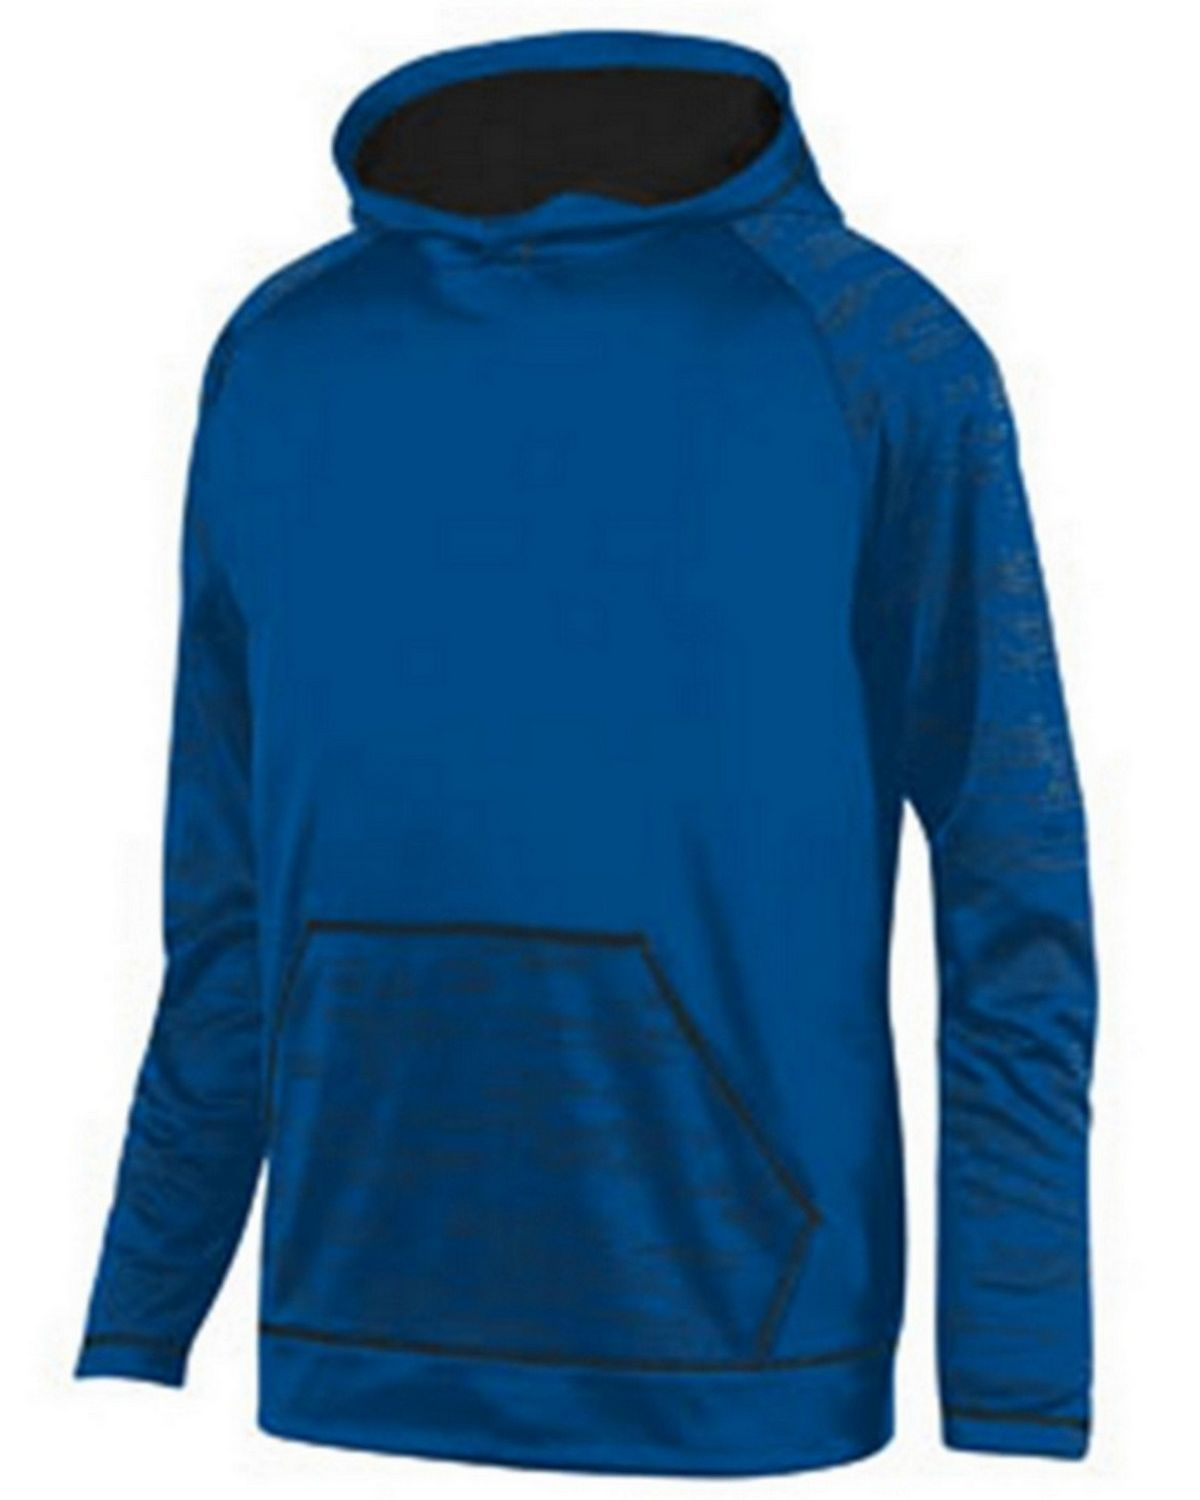 Augusta Sportswear 5533 Youth Sleet Hoody - Royal/ Black - M 5533